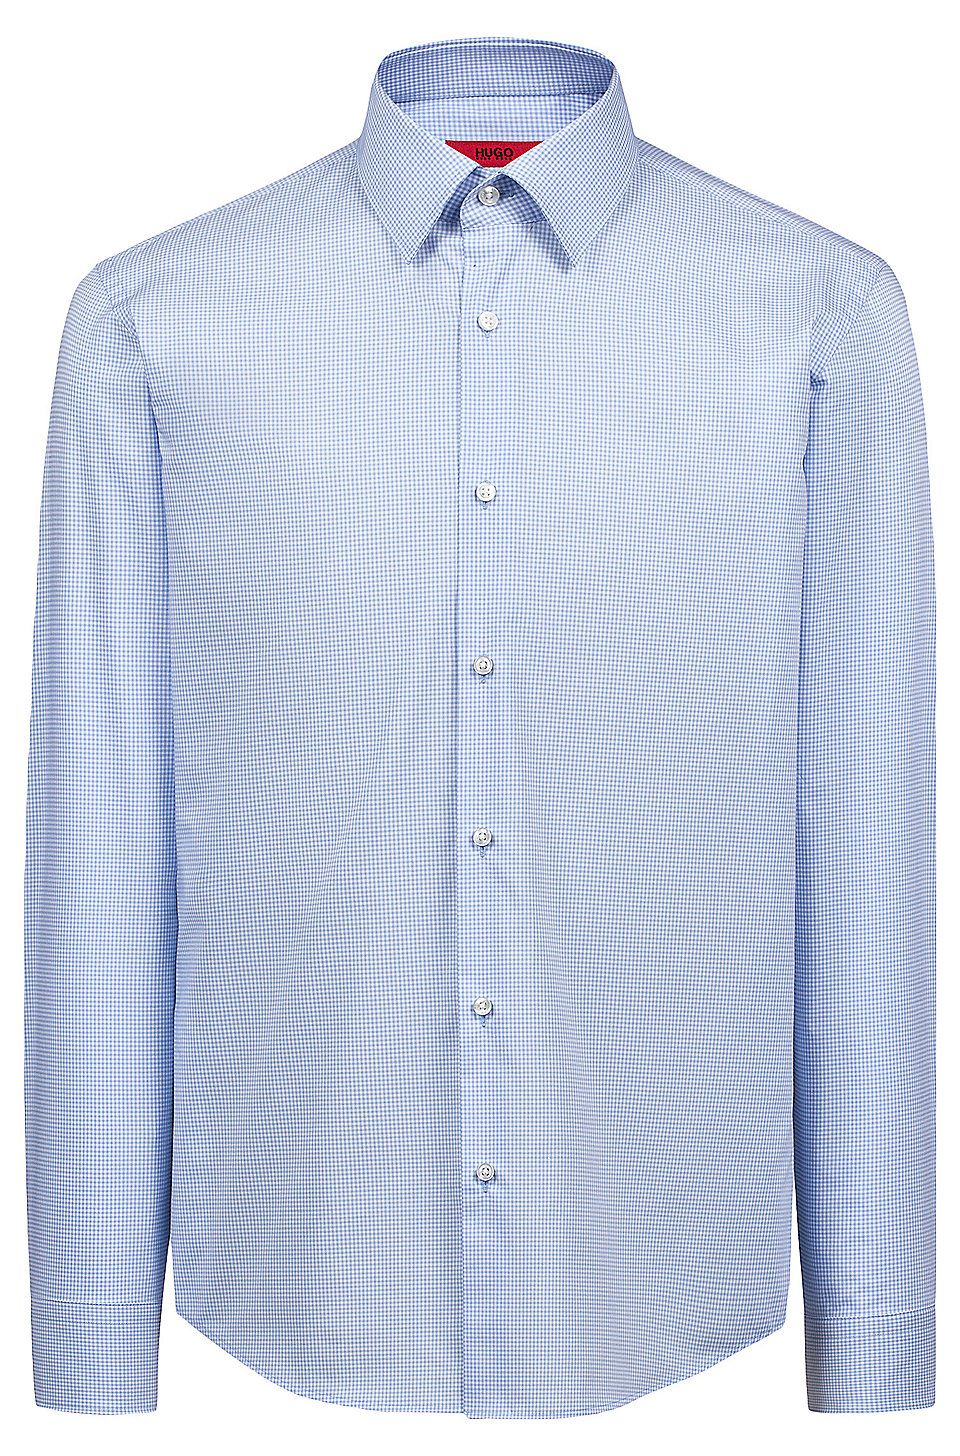 bd6b42c8 HUGO BOSS Regular-fit easy-iron shirt in Vichy-check cotton - Light Blue  Shirts from HUGO for Men in the official HUGO BOSS Online Store free  shipping